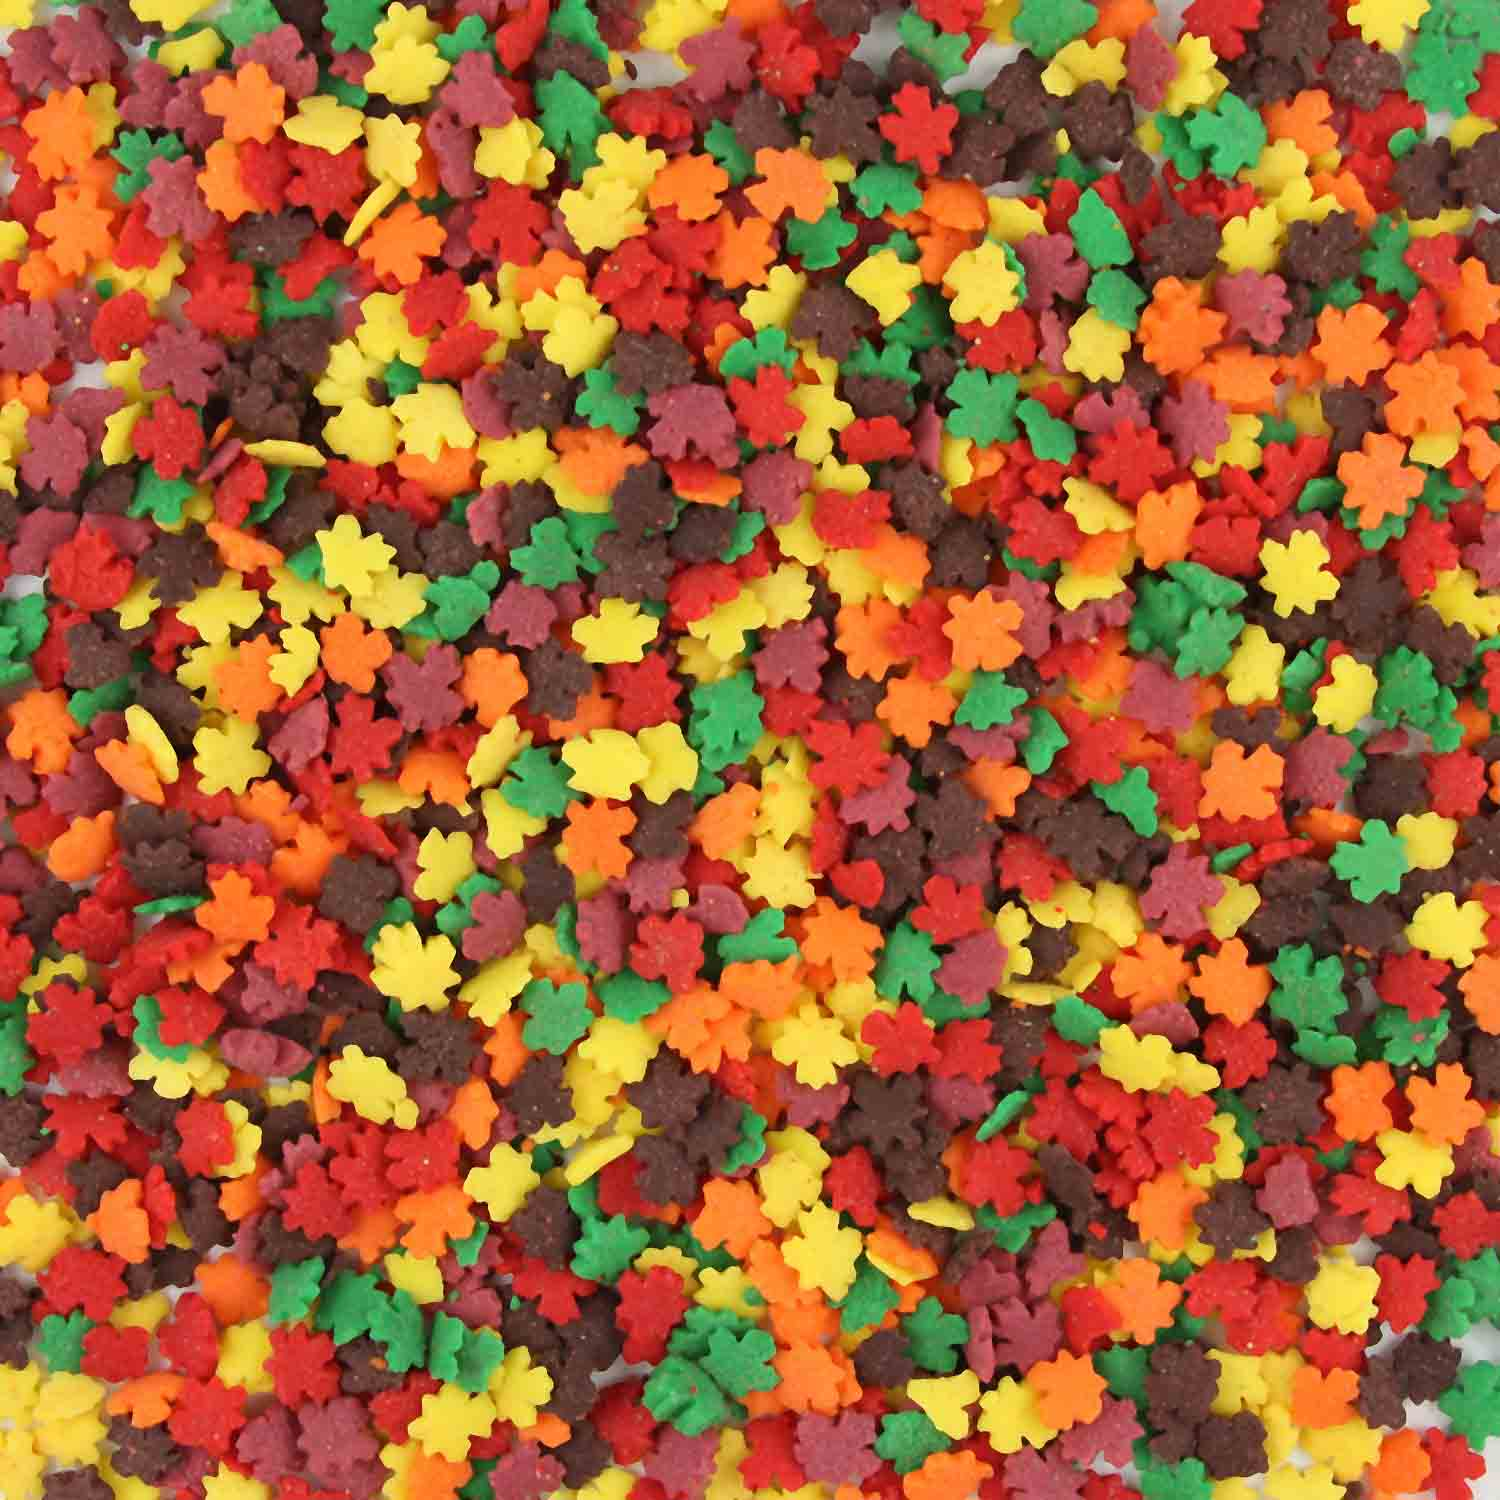 Autumn Leaves Edible Confetti Sprinkles